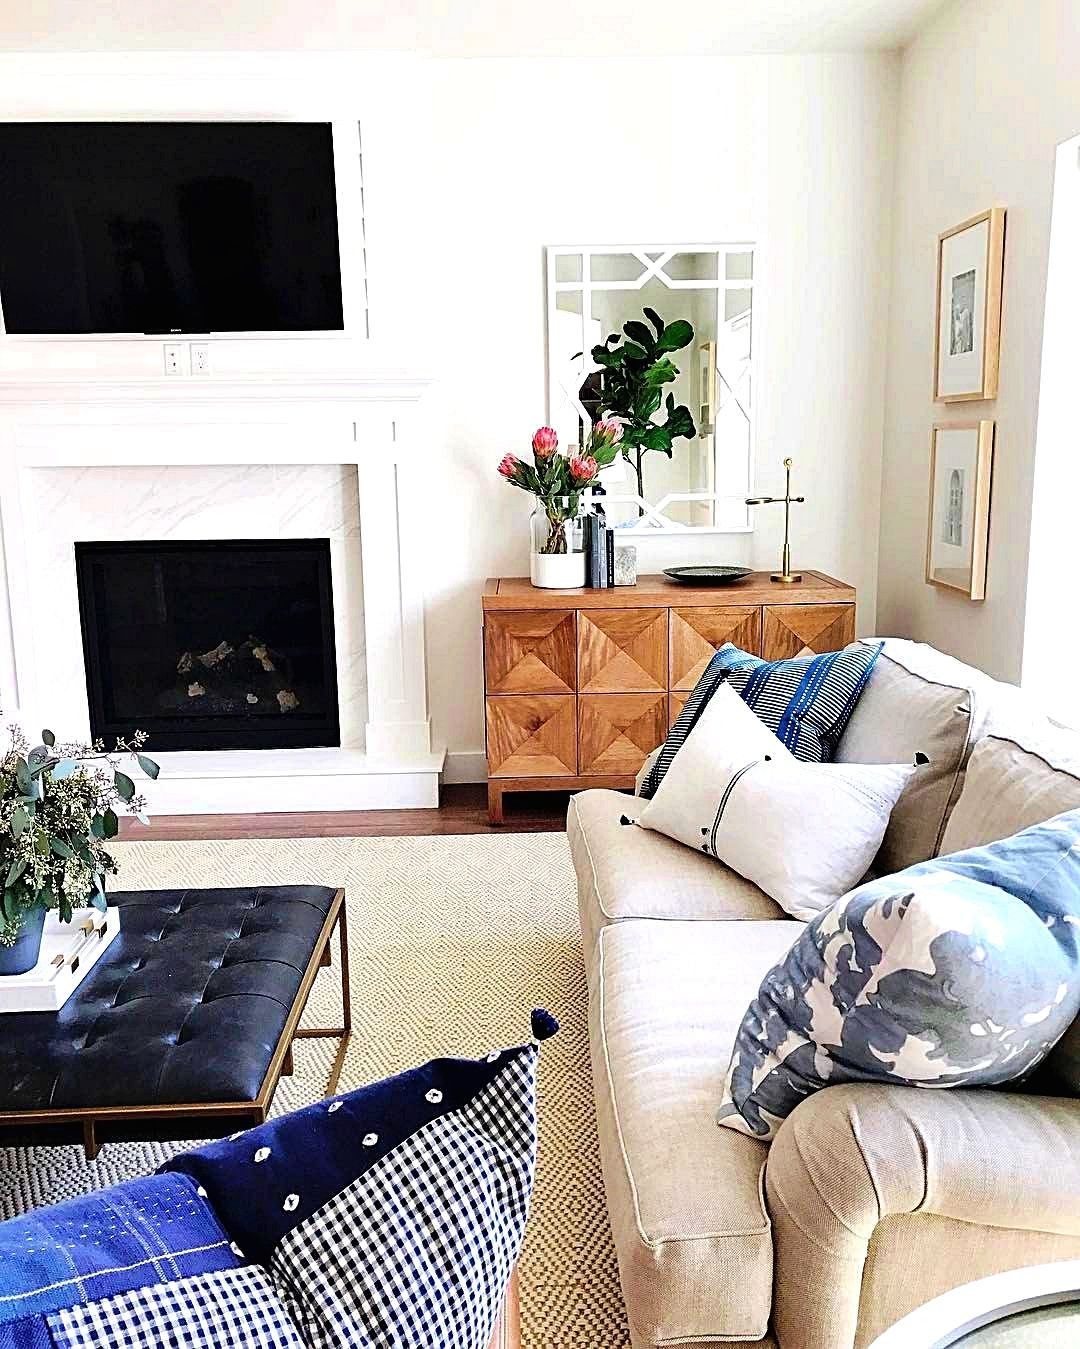 Living Room Design Ideas This Really Is A Fun And Inventive Decorating Idea That Is Good For Peopl Living Room Remodel Living Room With Fireplace Room Design